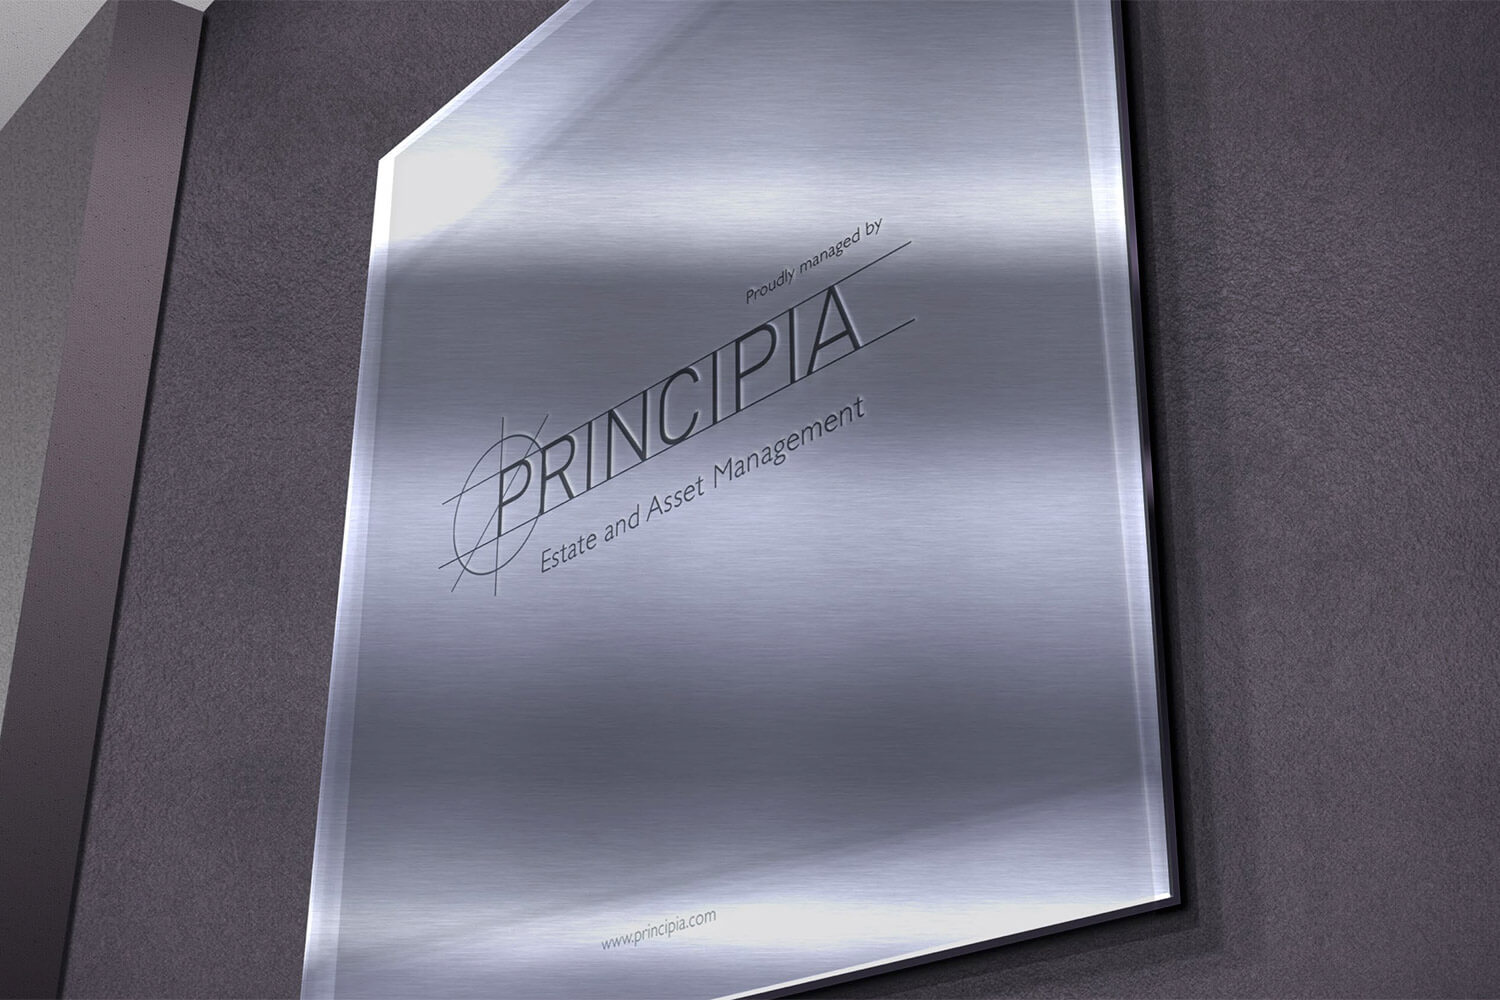 A mockup of the design for the plaques to be erected in Principia managed buildings